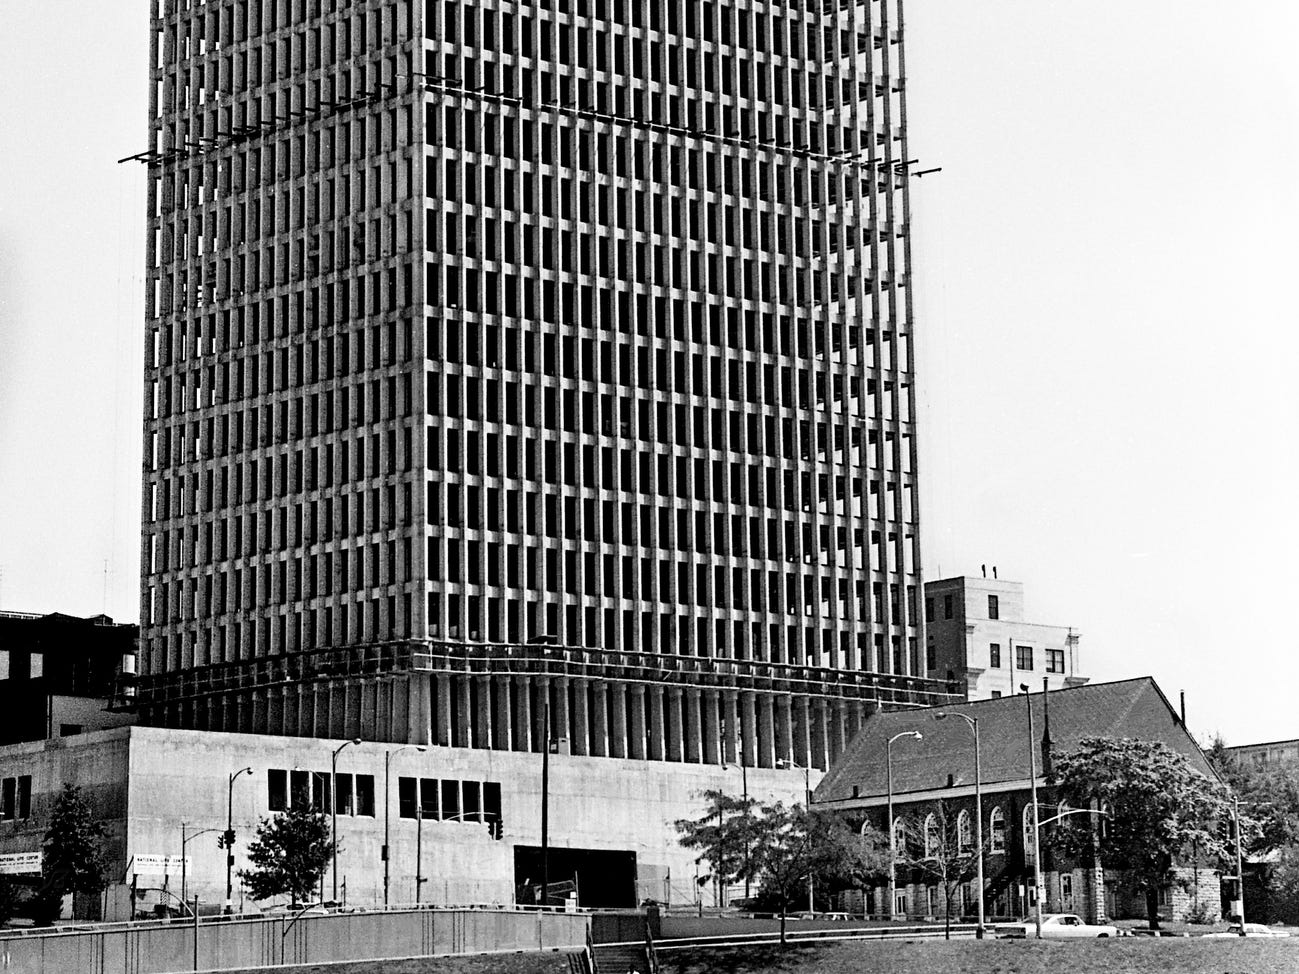 The new home office of the National Life & Accident Insurance Co., here Sept. 14, 1968, towers over the First Baptist Church, which had a big role in the civil rights movement in Nashville.